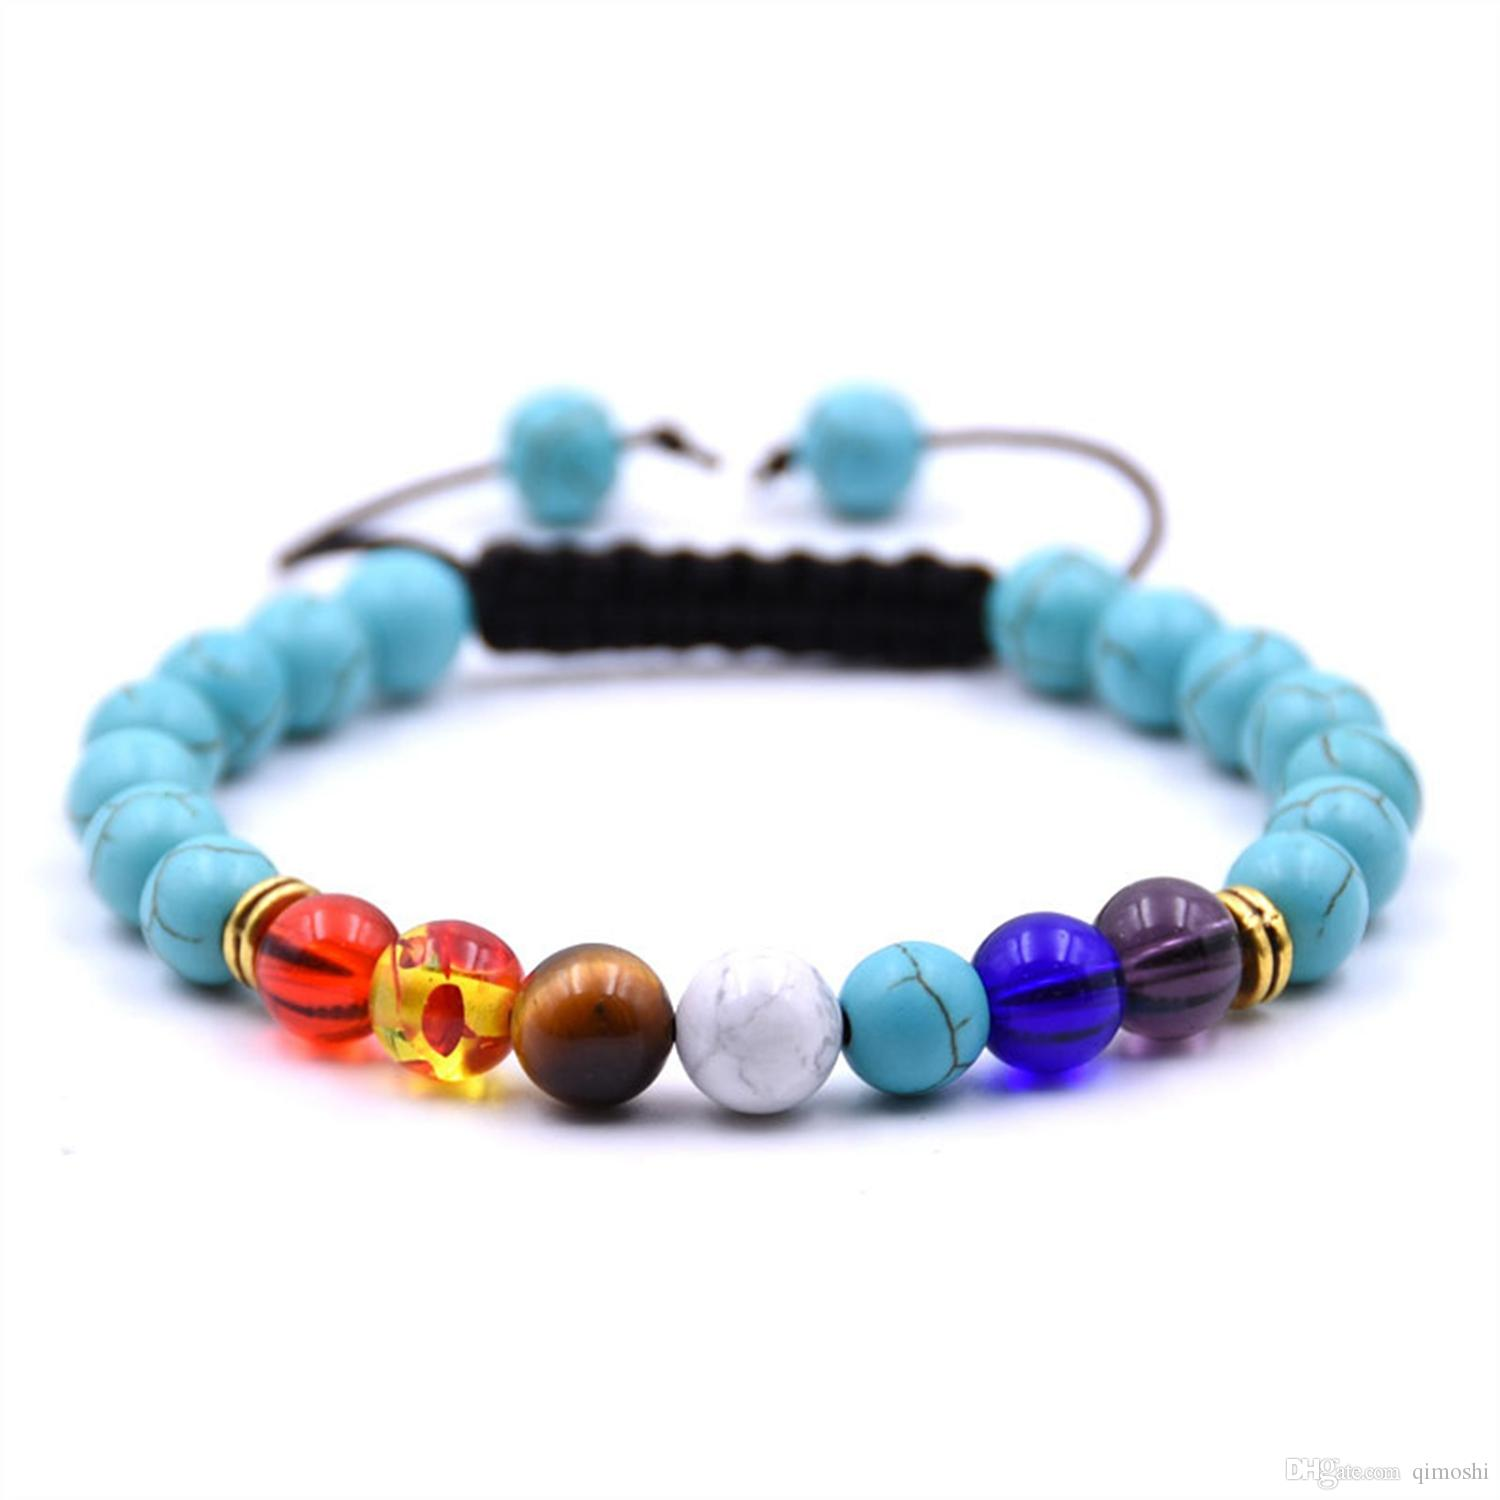 Factory sale handmade lucky turquoise woven 7 chakra adjustable natural stone bracelet with 8mm round beads for unisex wholesale